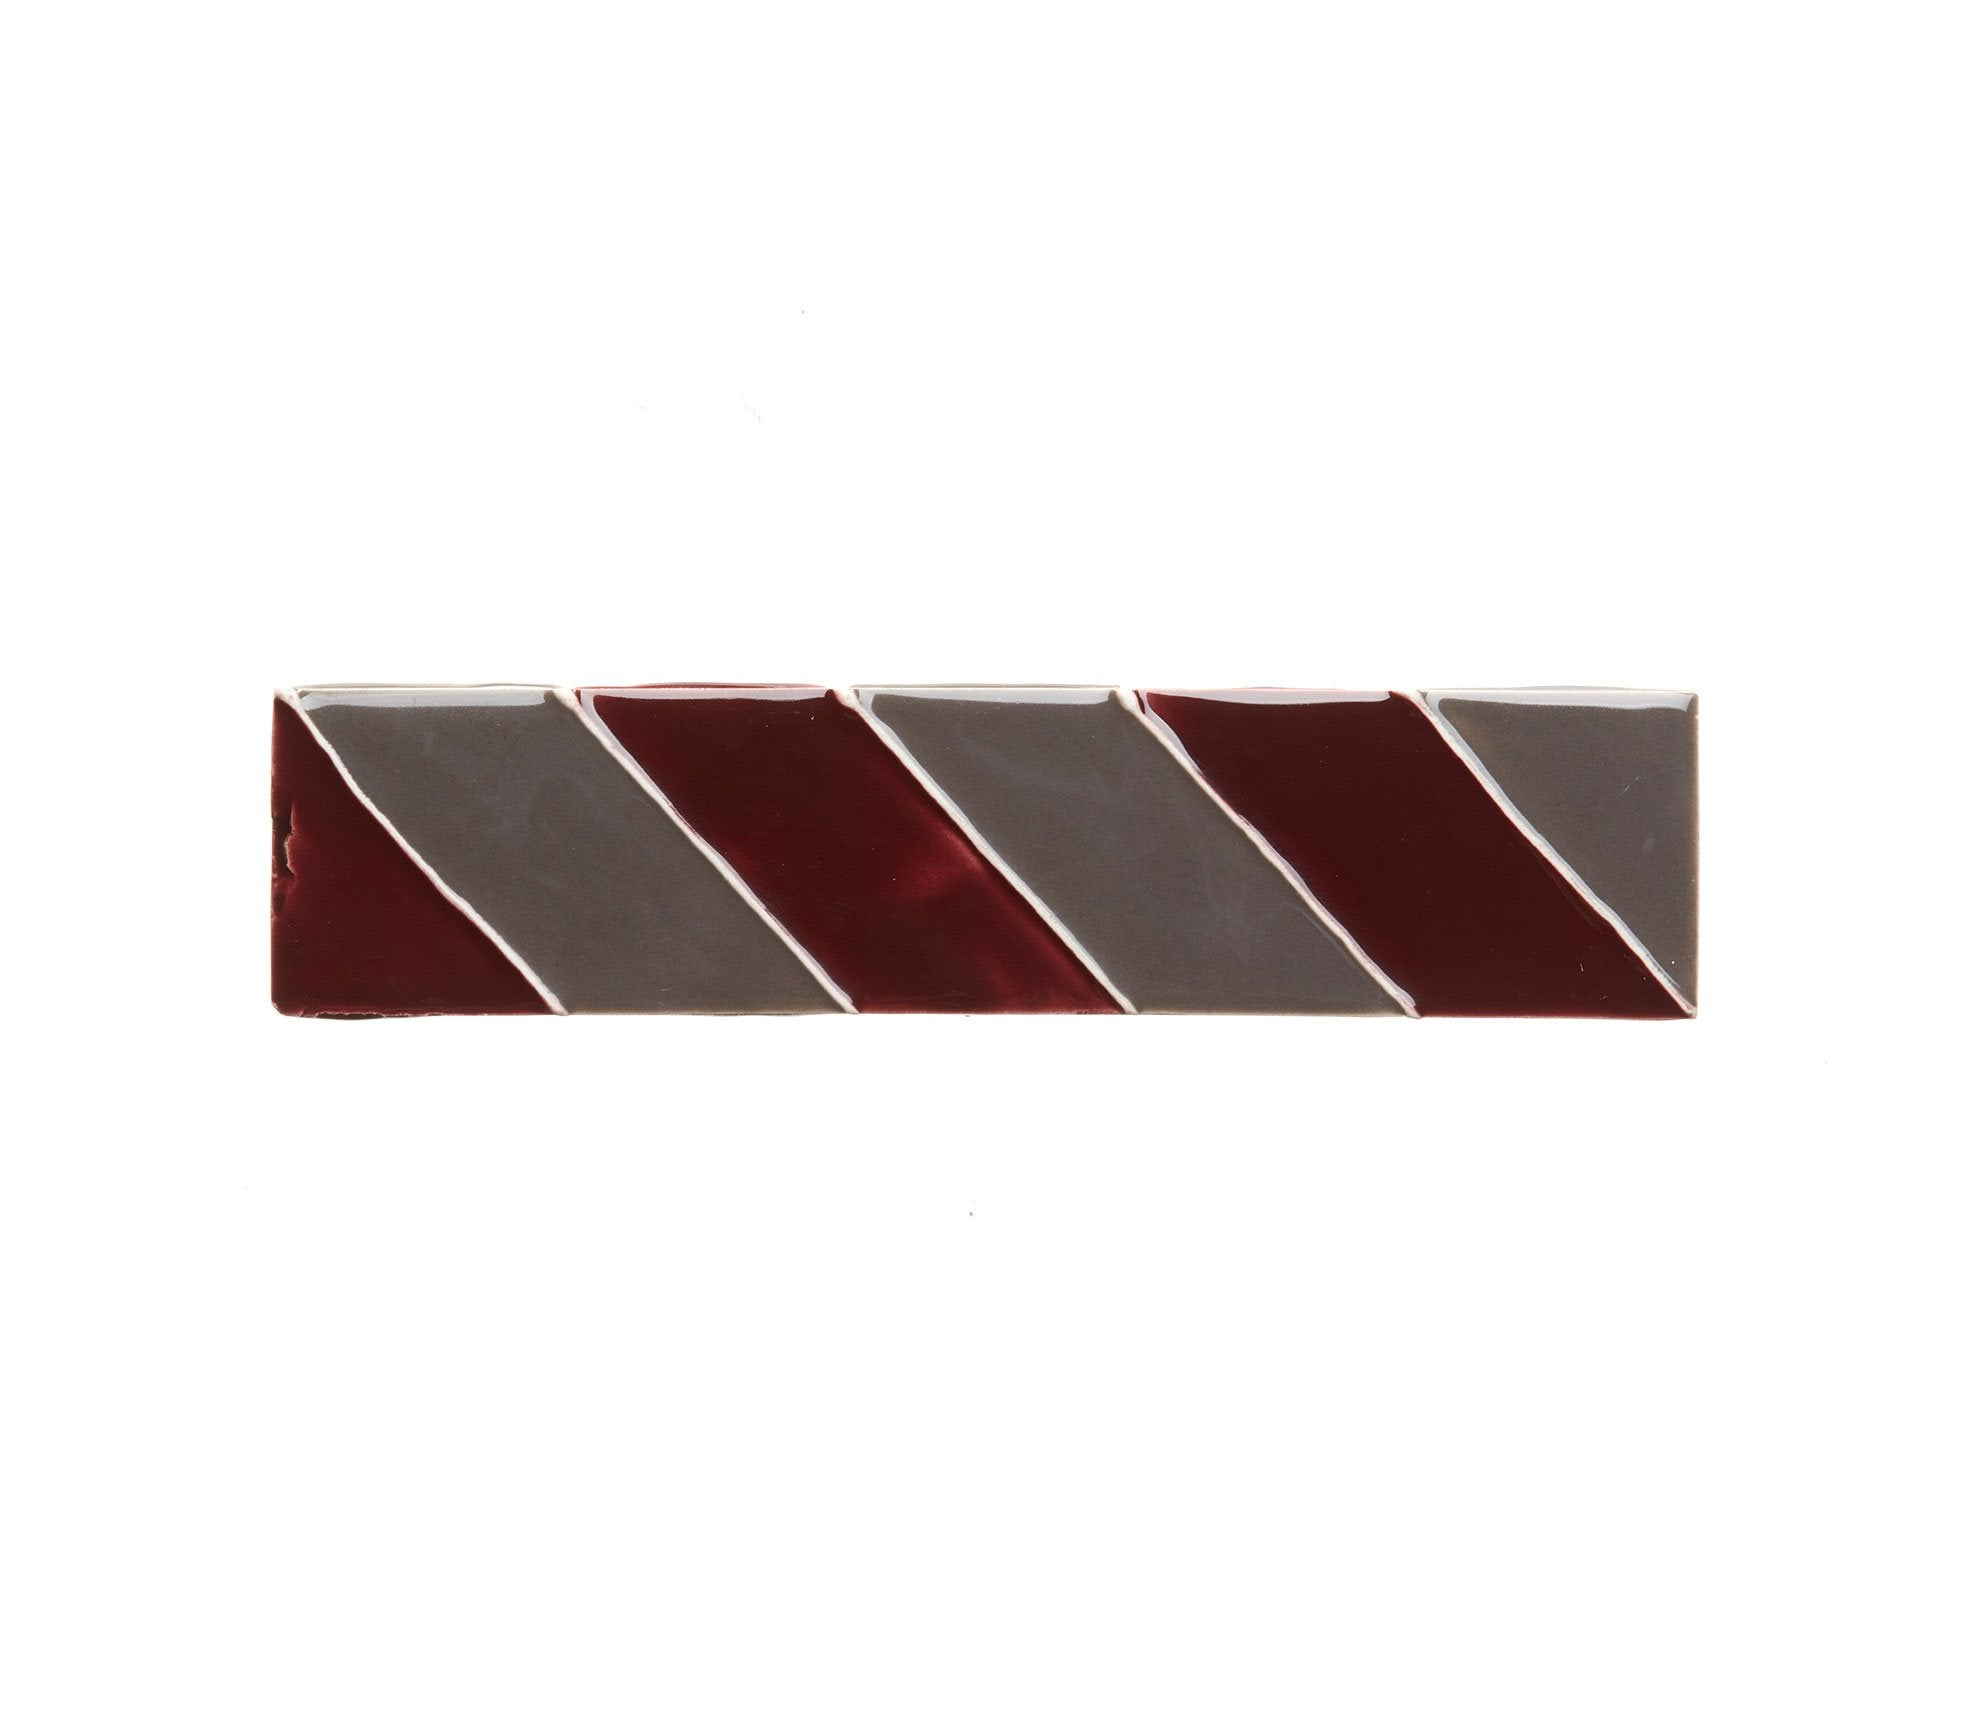 Hanley Tube Lined Decorative Tiles Product Image 15